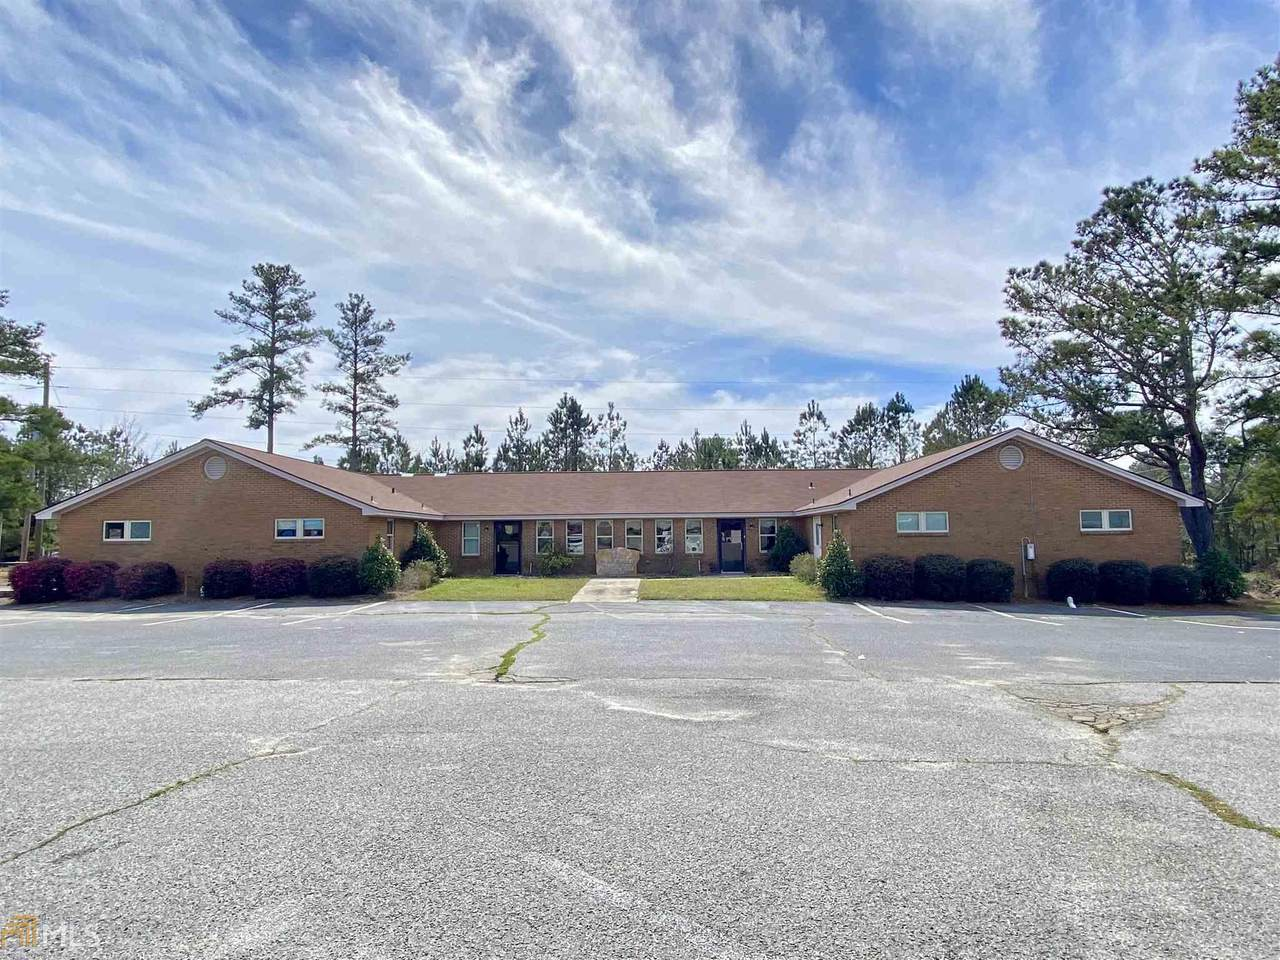 818 Professional Center Dr - Photo 1